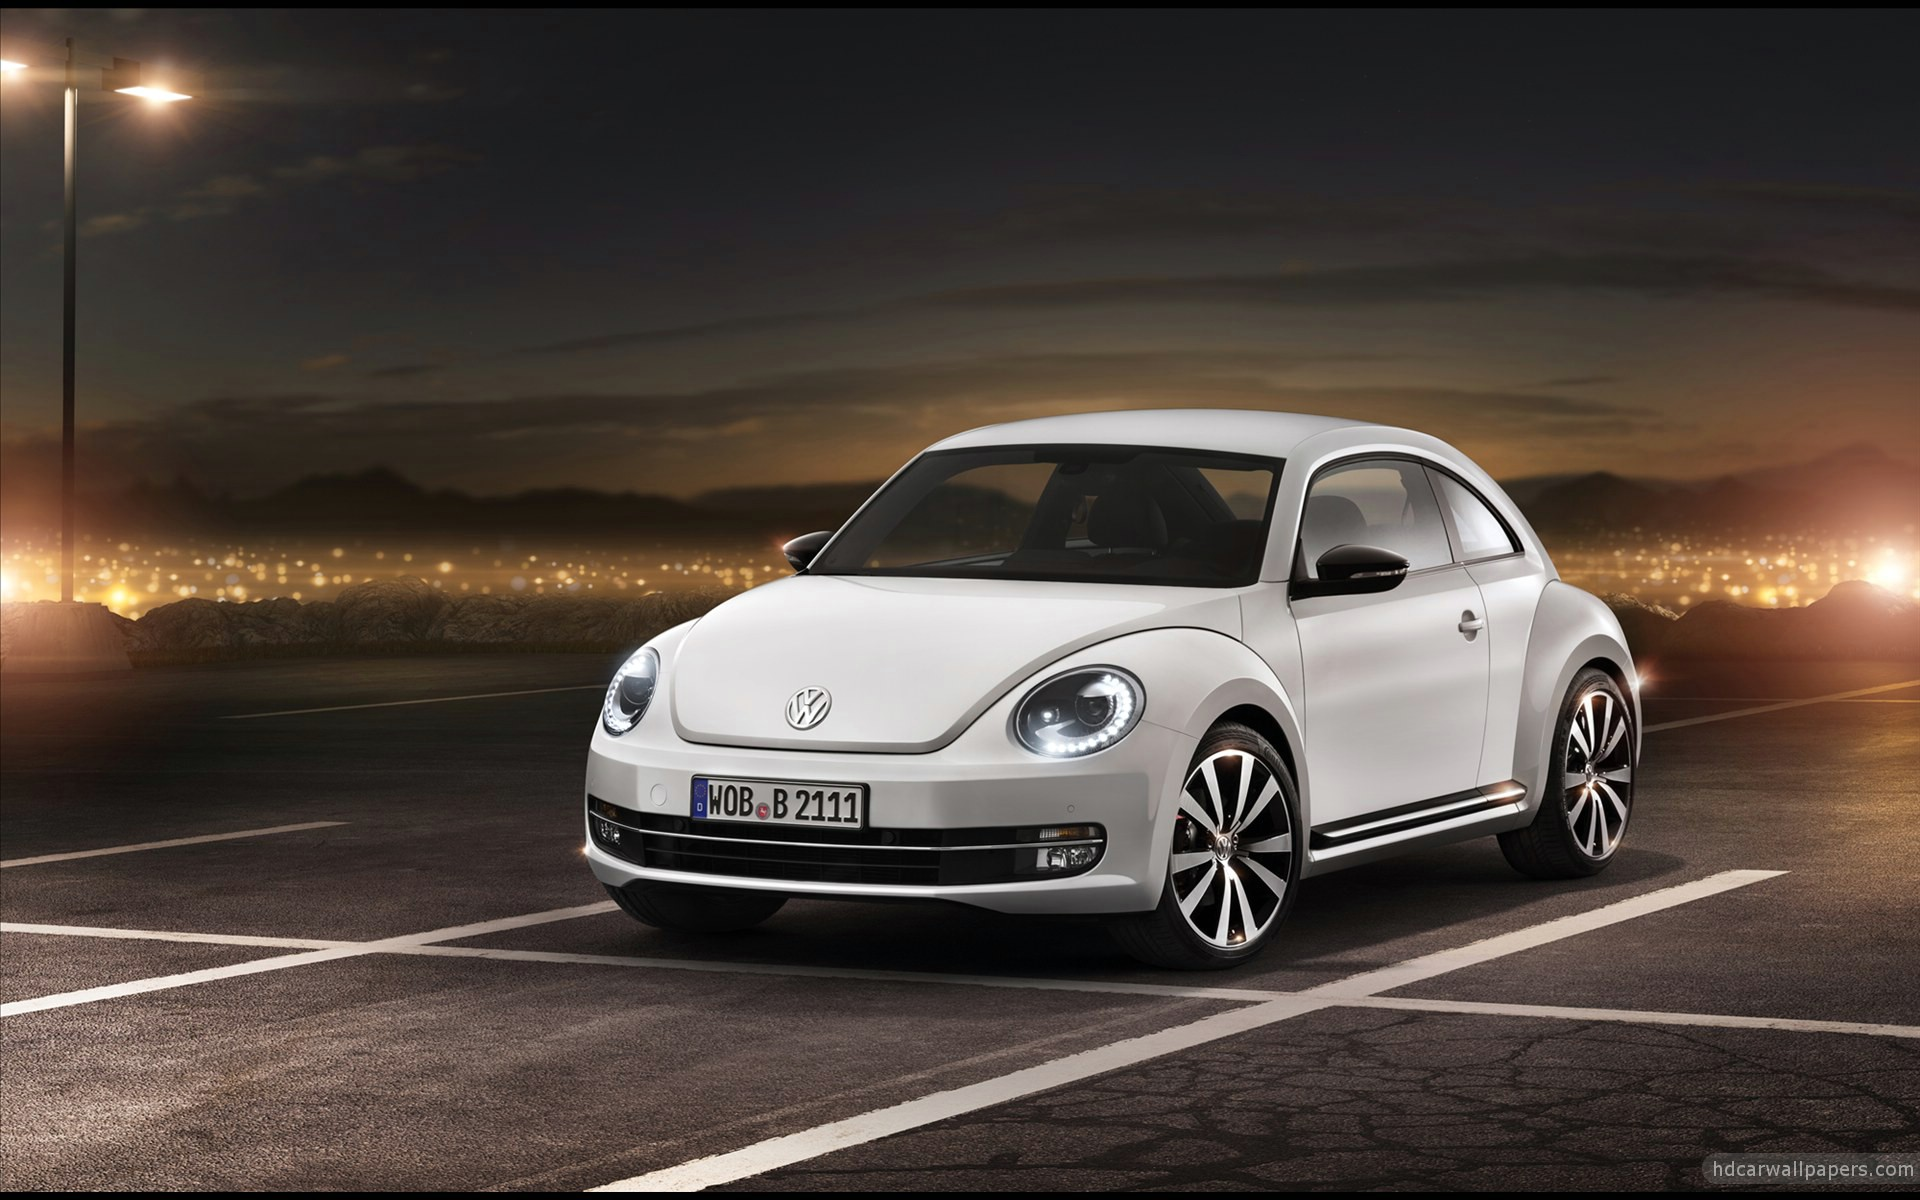 2012 Volkswagen Beetle Wallpaper HD Car Wallpapers 1920x1200